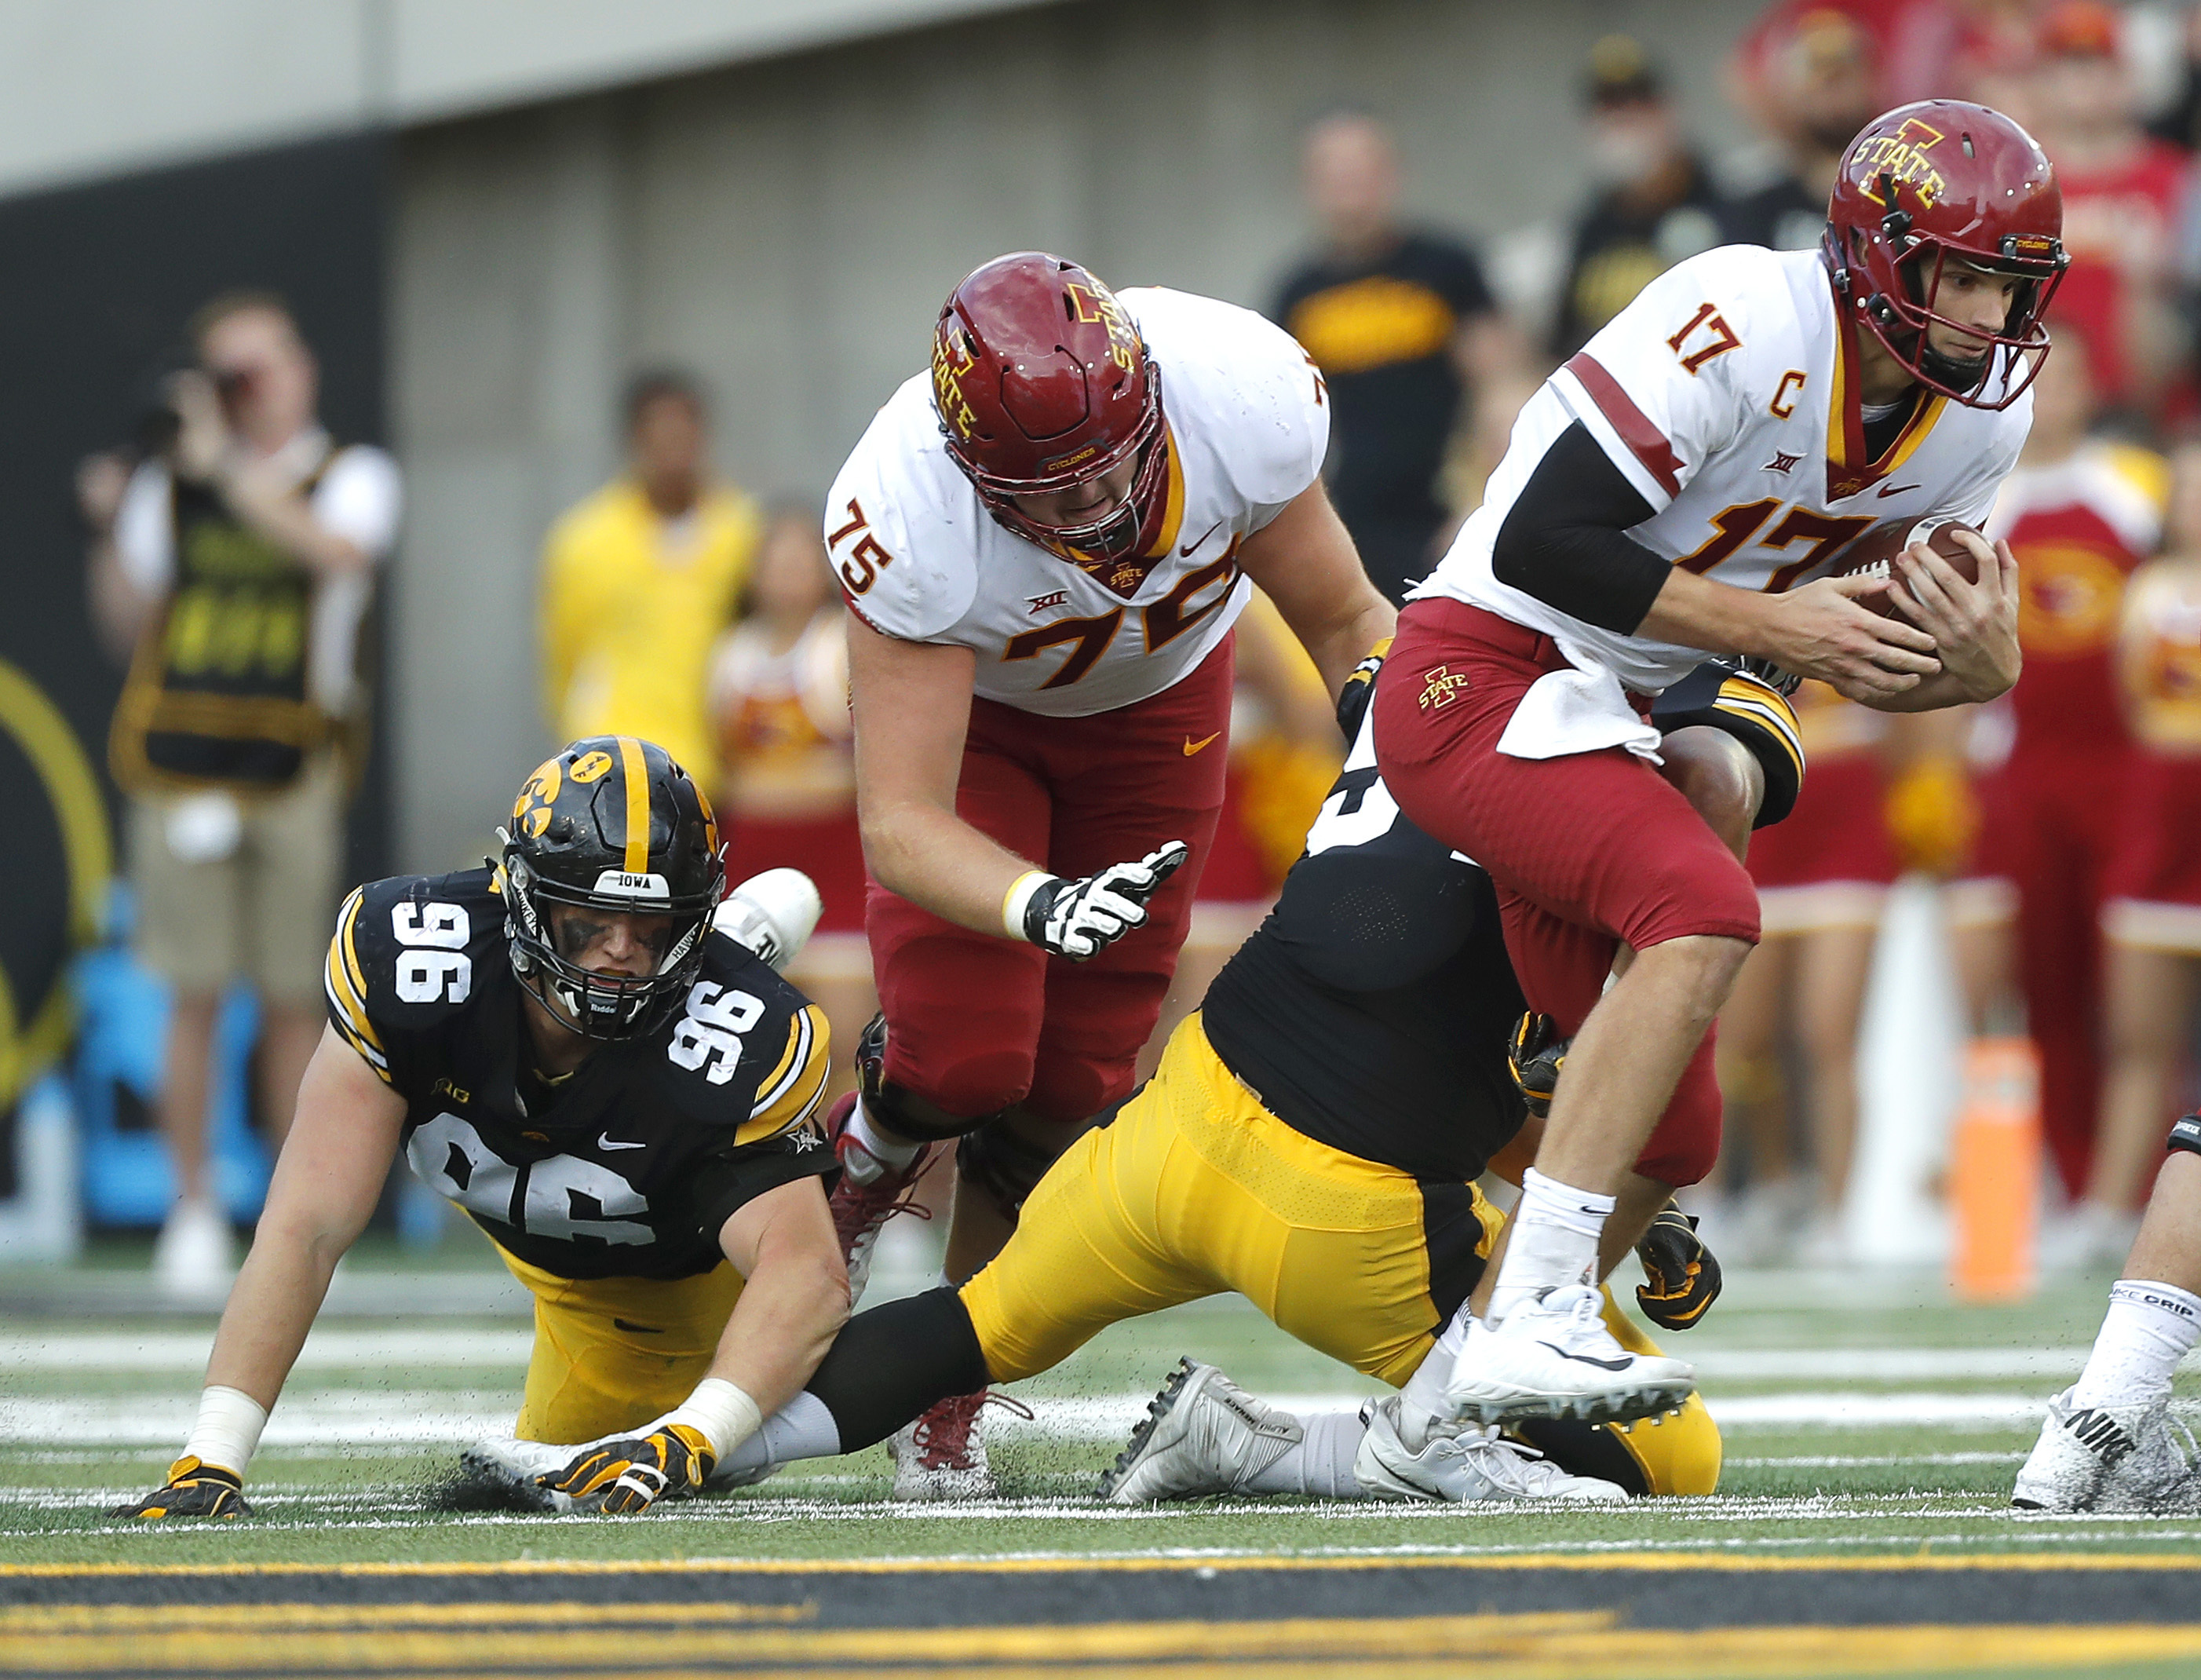 Iowa States offensive line struggles in opener